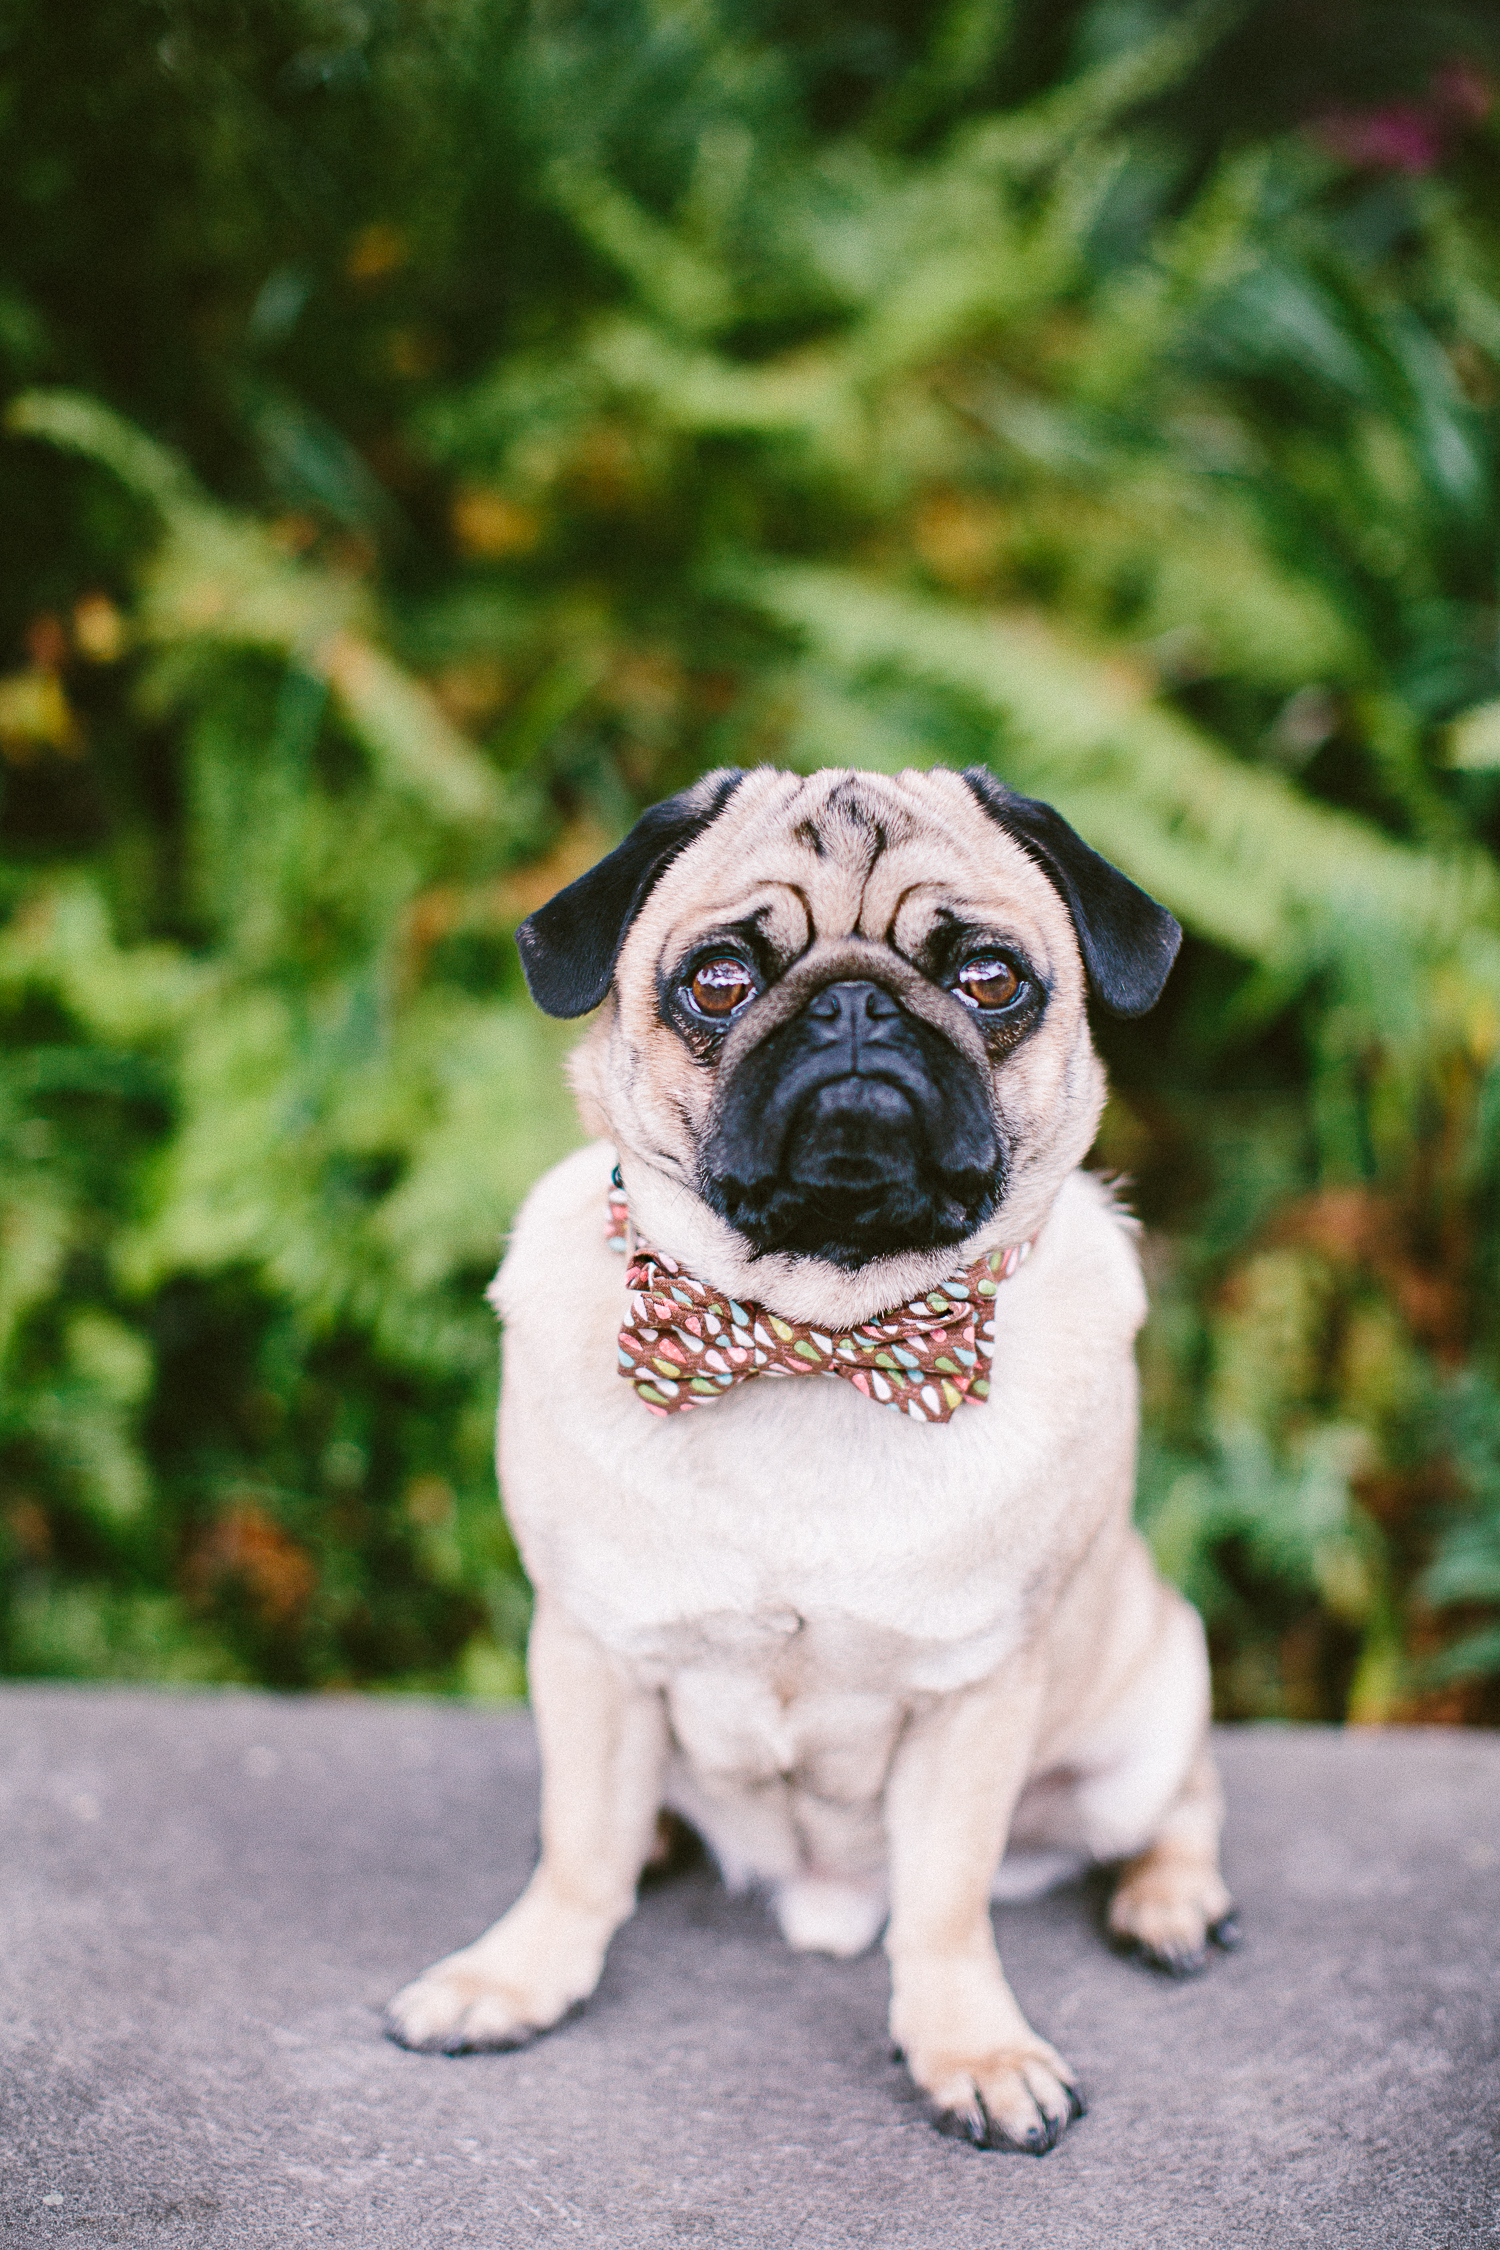 twoguineapigs_pet_photography_oh_jaffa_picnic_pugs_1500-22.jpg